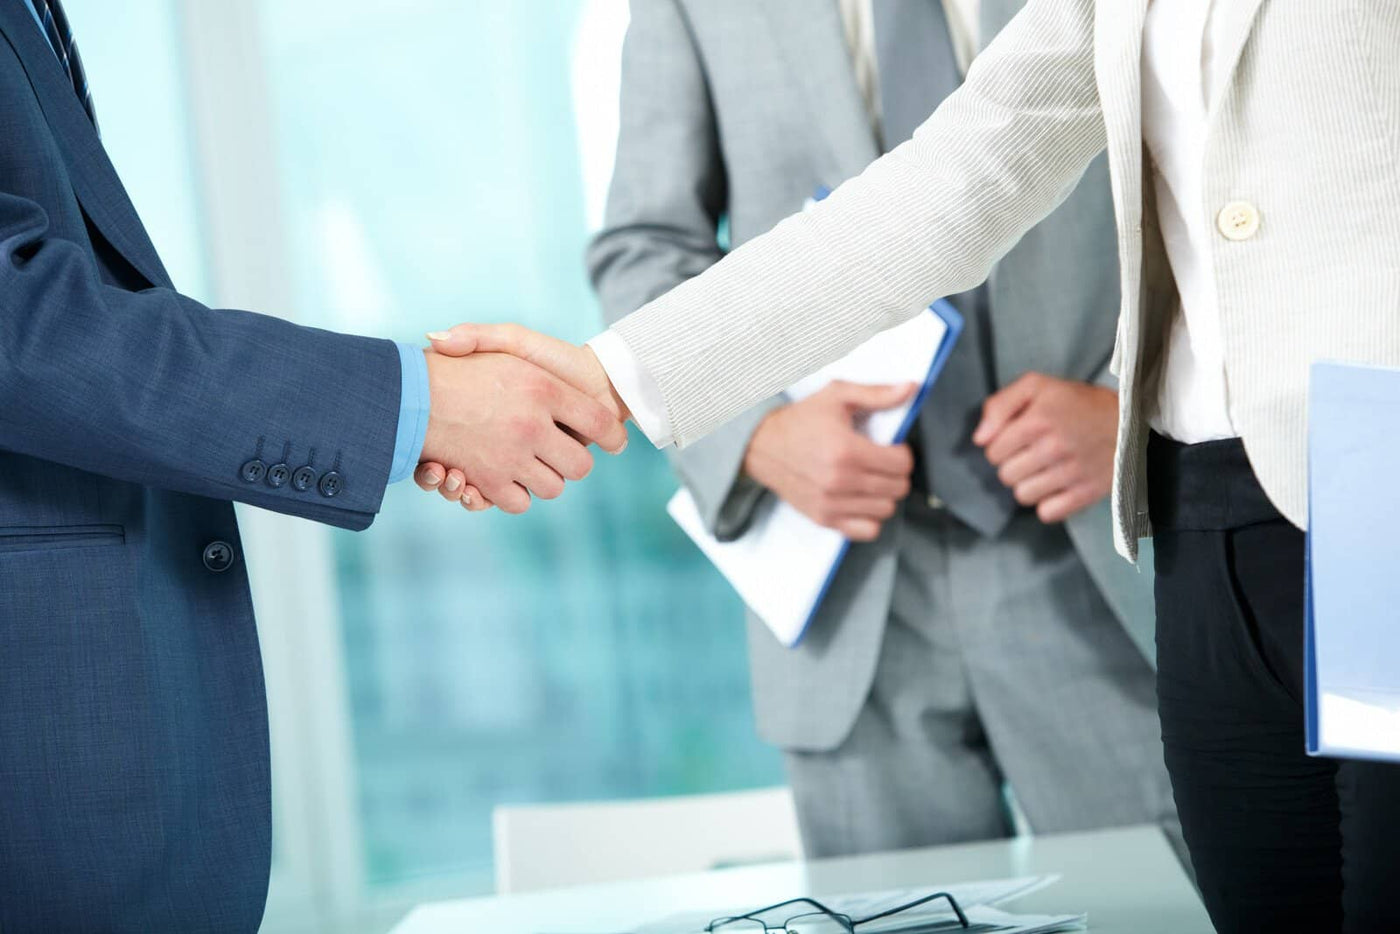 Business men in suits shaking hands